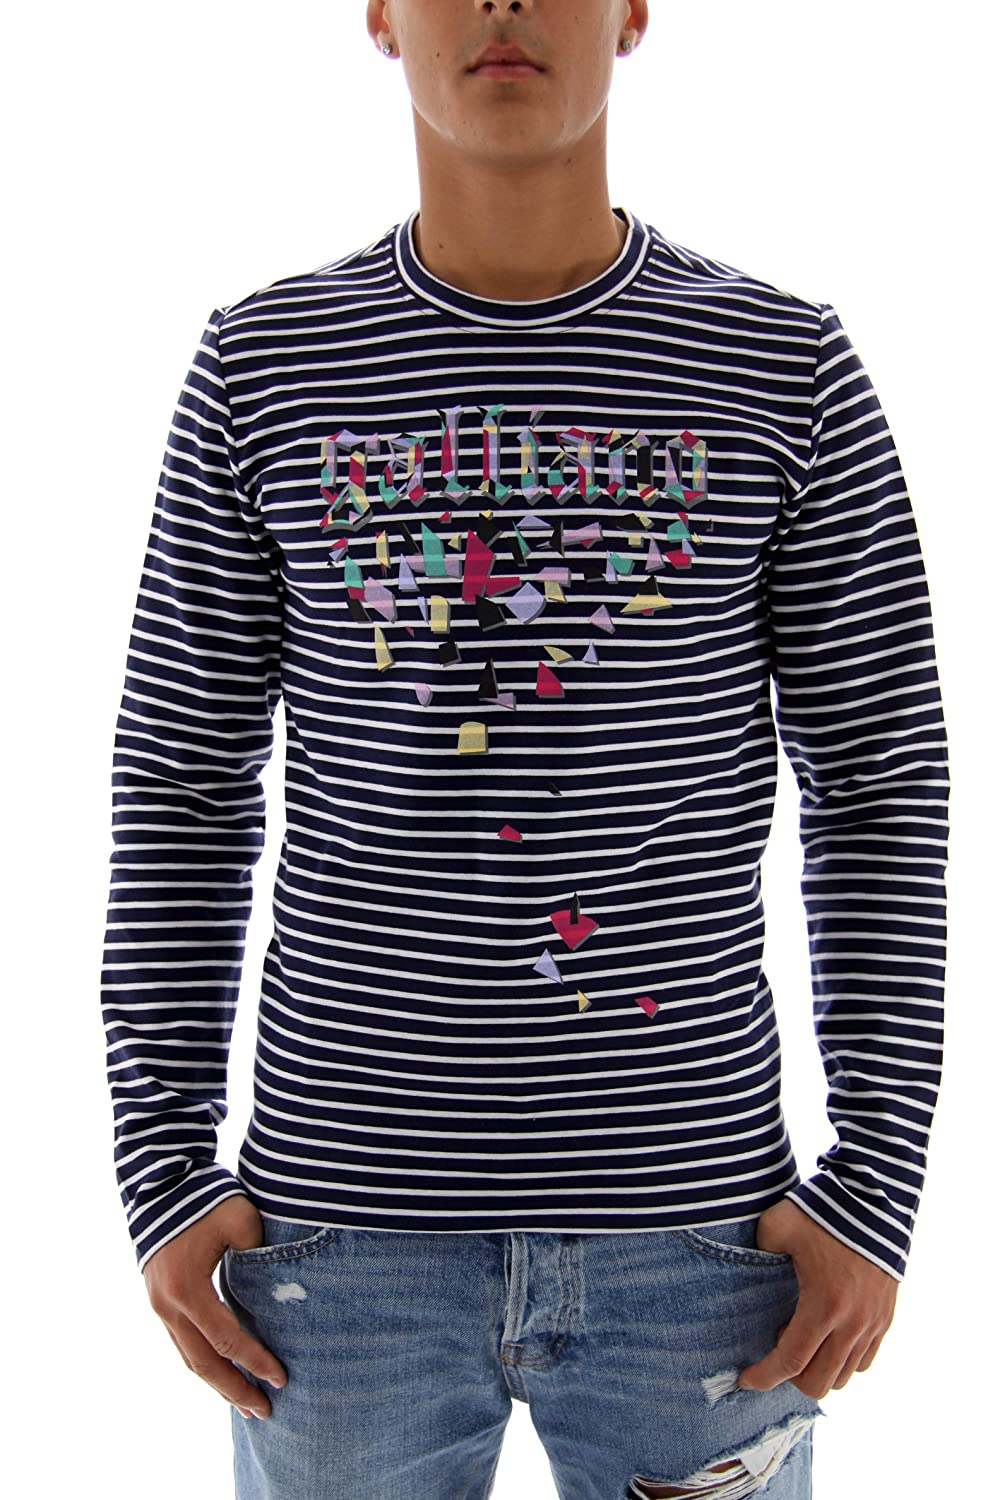 John Galliano Men's Sweatshirt Blau Weiss XS